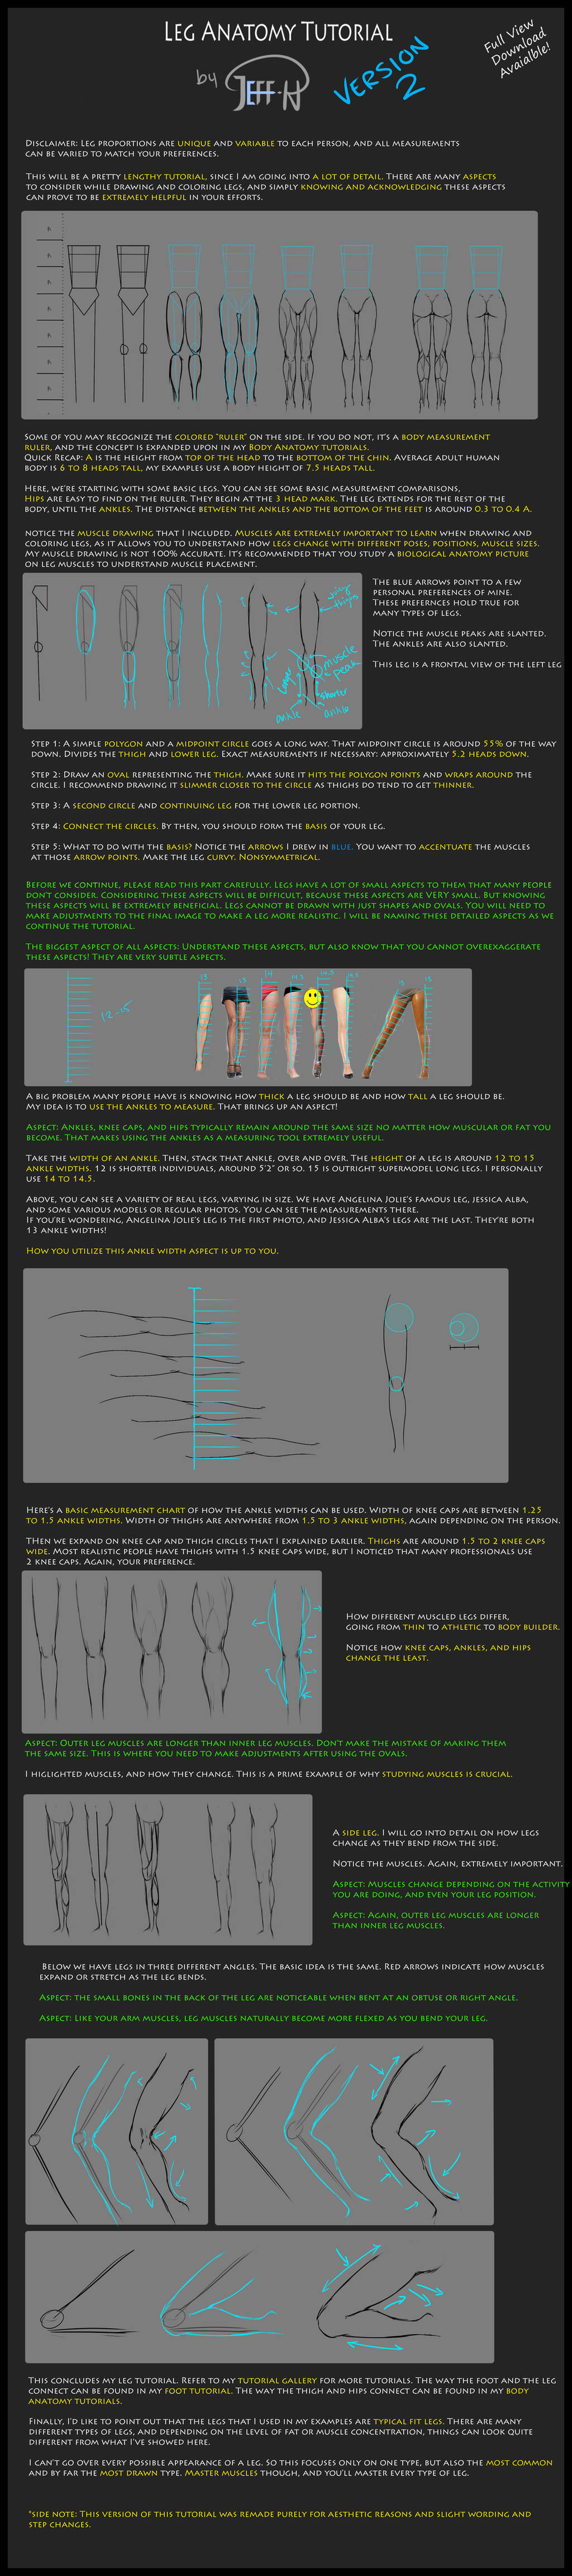 Leg Anatomy Tutorial (Version 2) by Jejihu